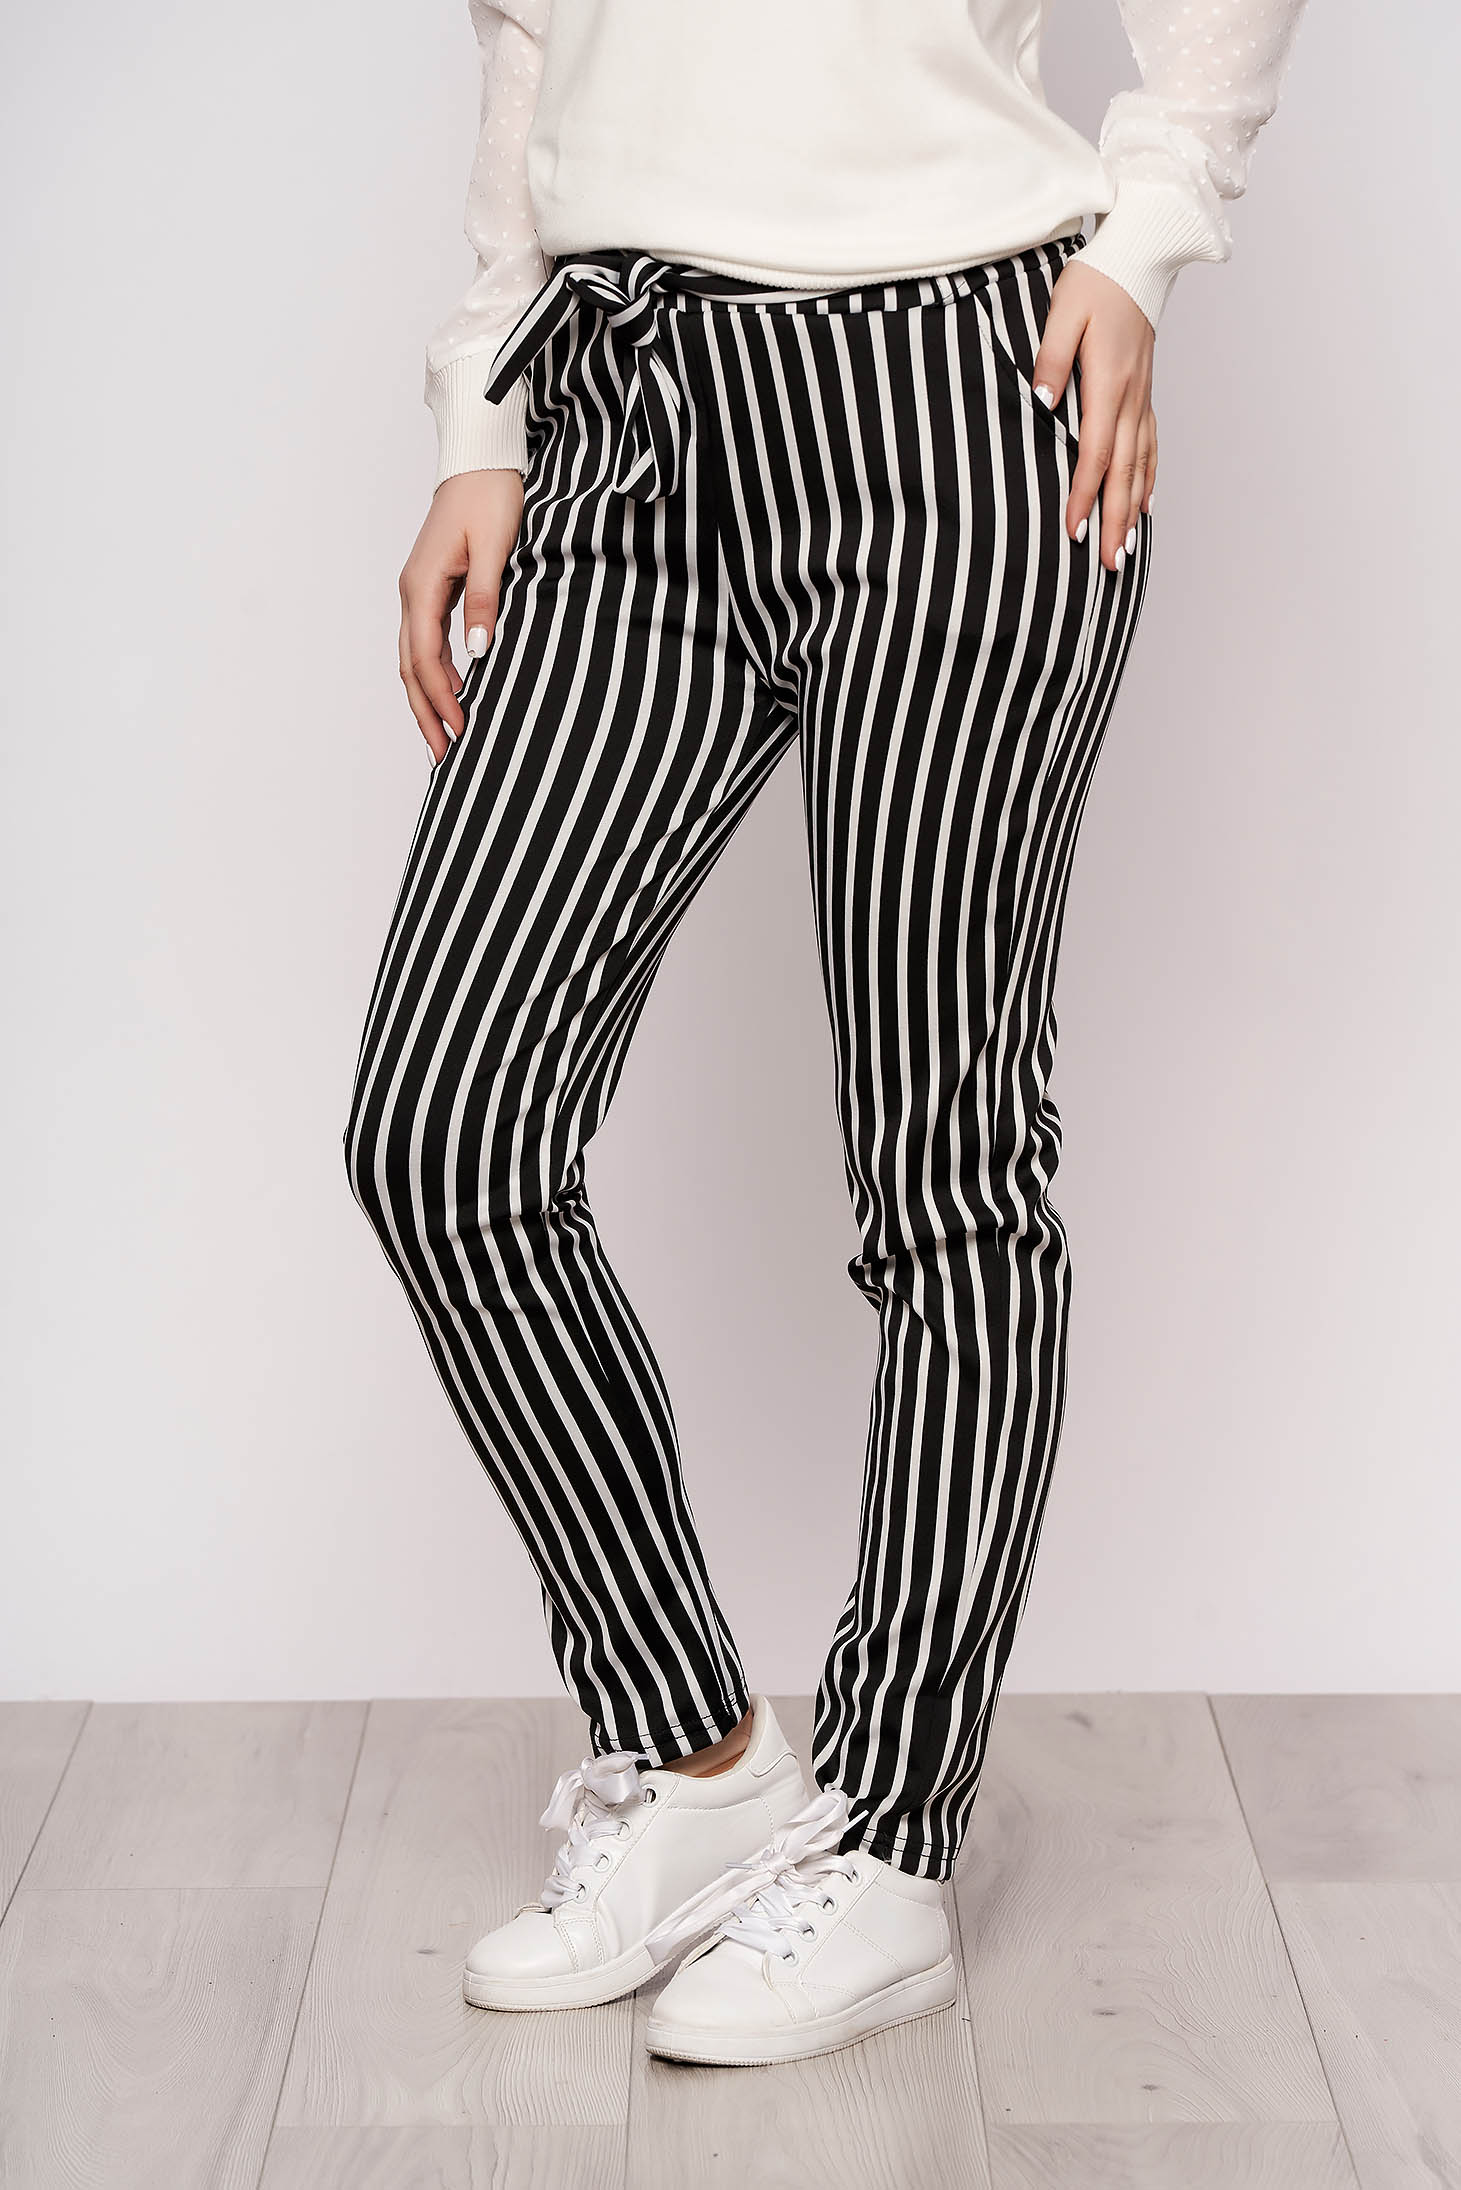 Black trousers casual thin fabric with pockets detachable cord with stripes